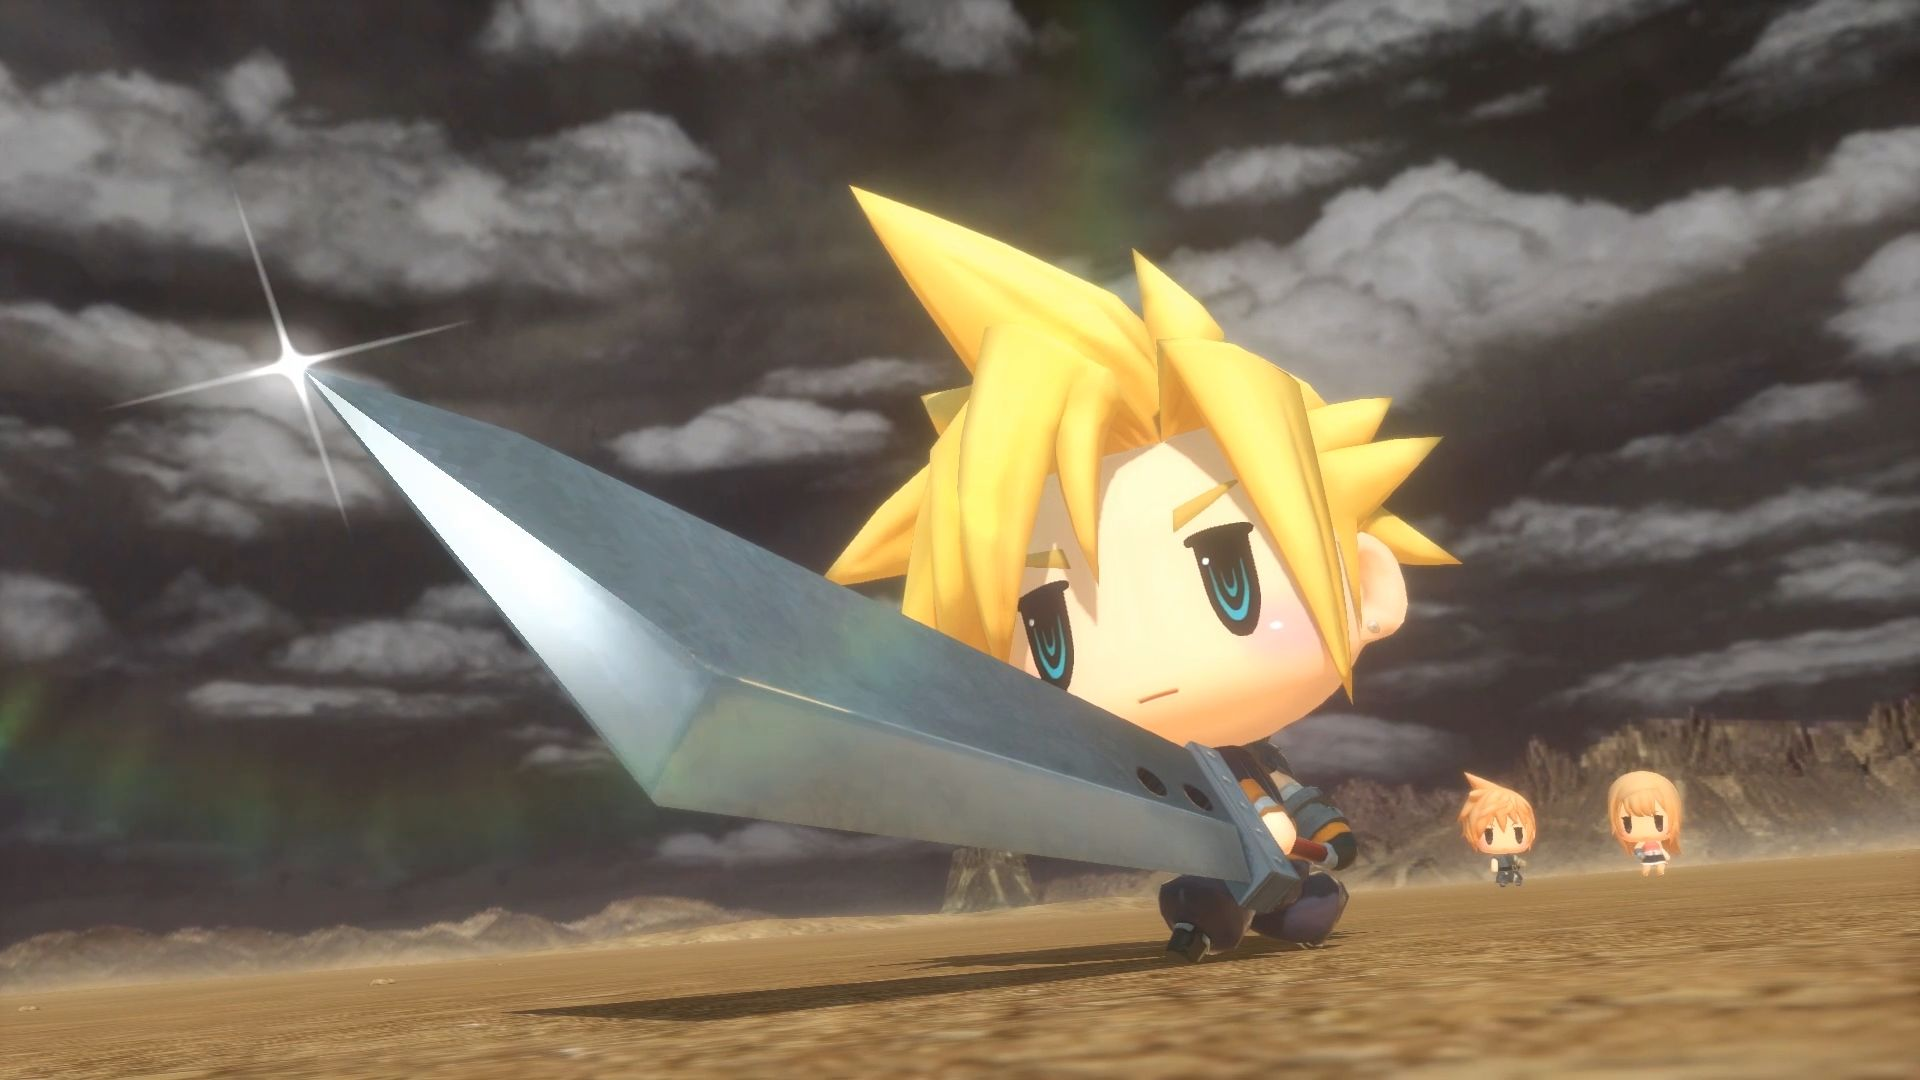 World Of Final Fantasy Code Jeu Pc Steam Amazon Fr Jeux Video